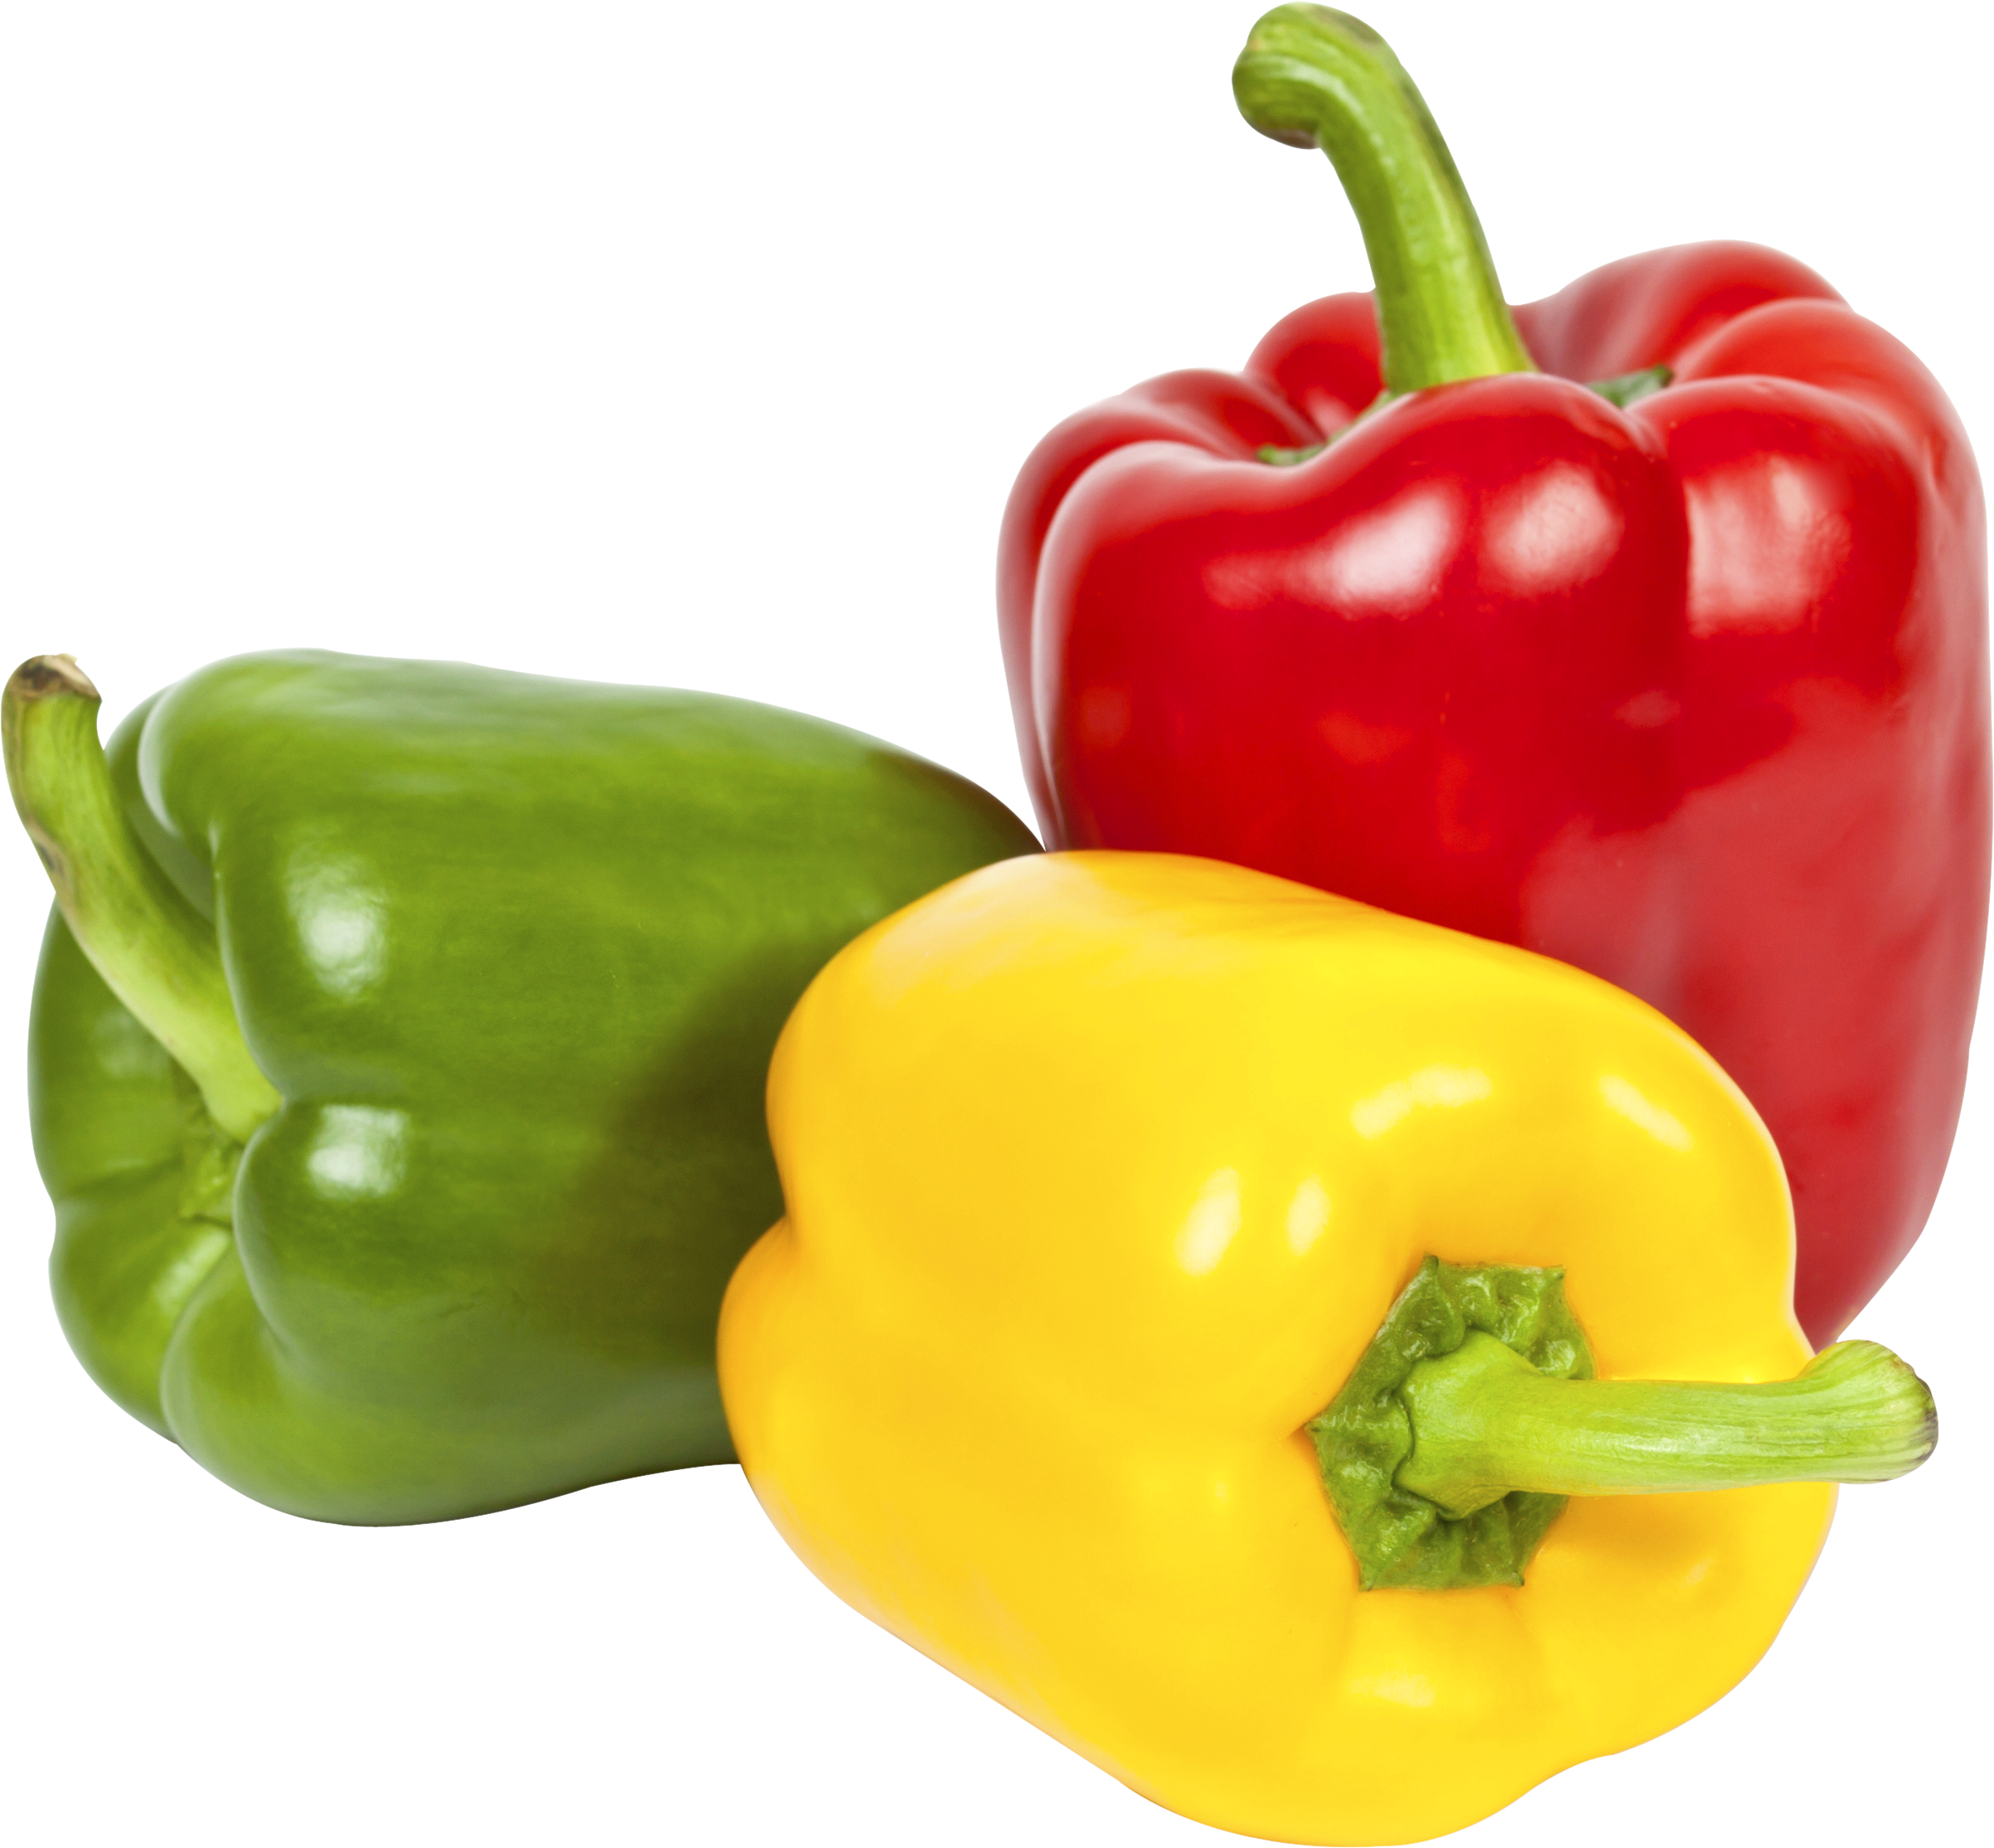 More View - Vegetable PNG